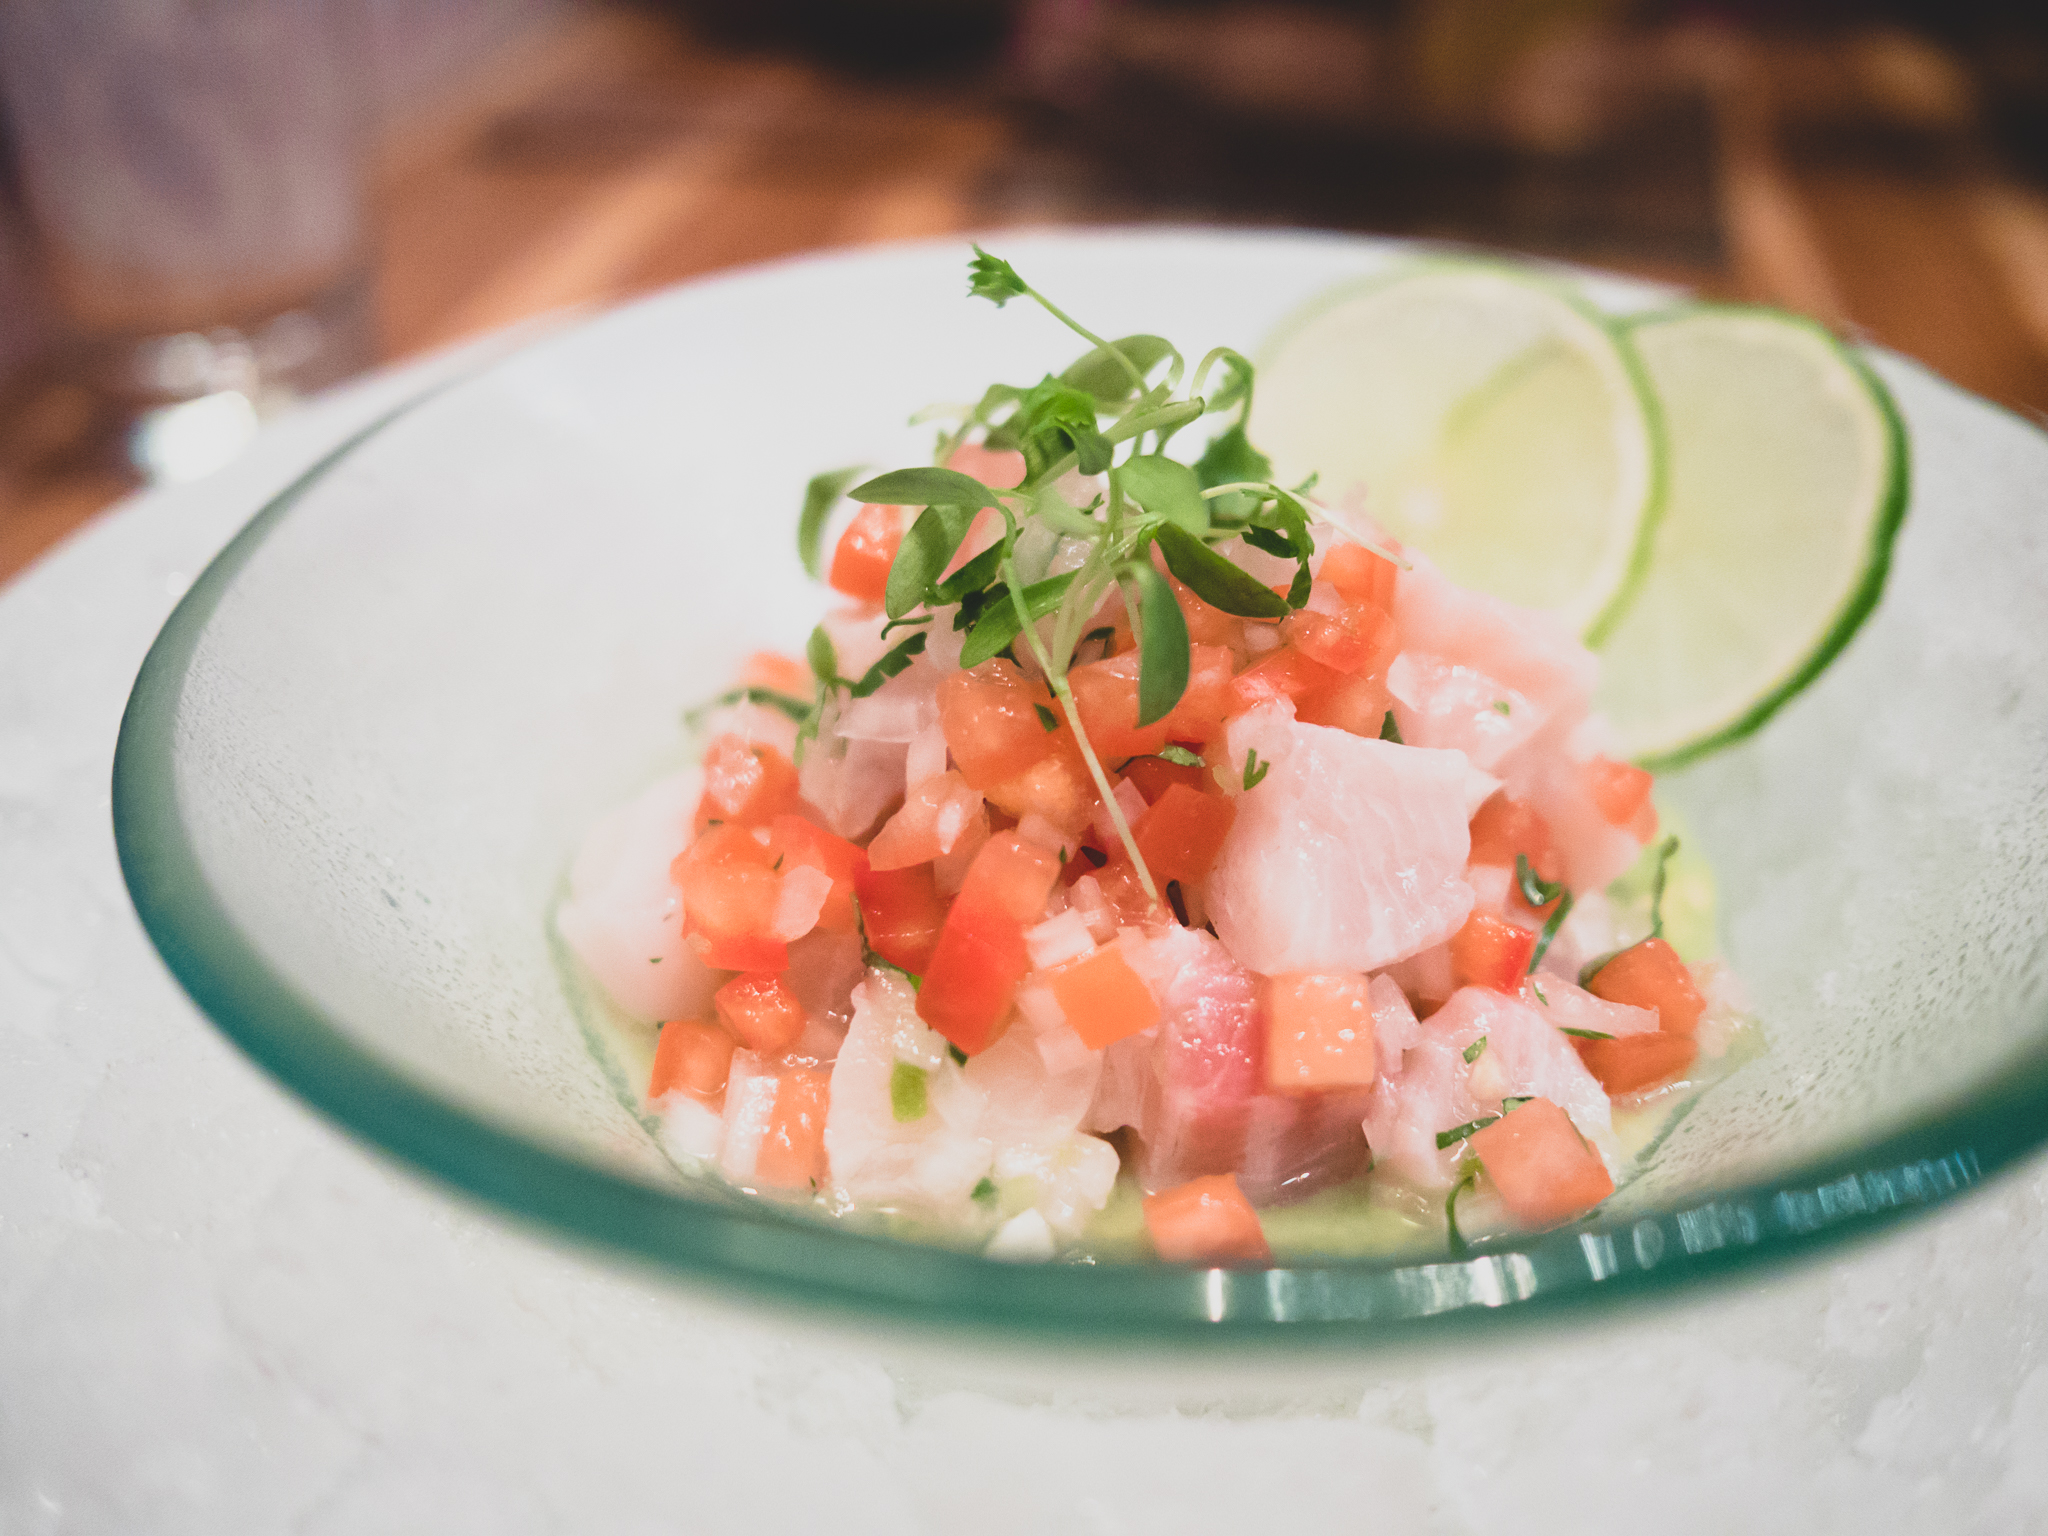 ceviche de peje sol : cured sunfish with serrano chiles, tomato, lime.